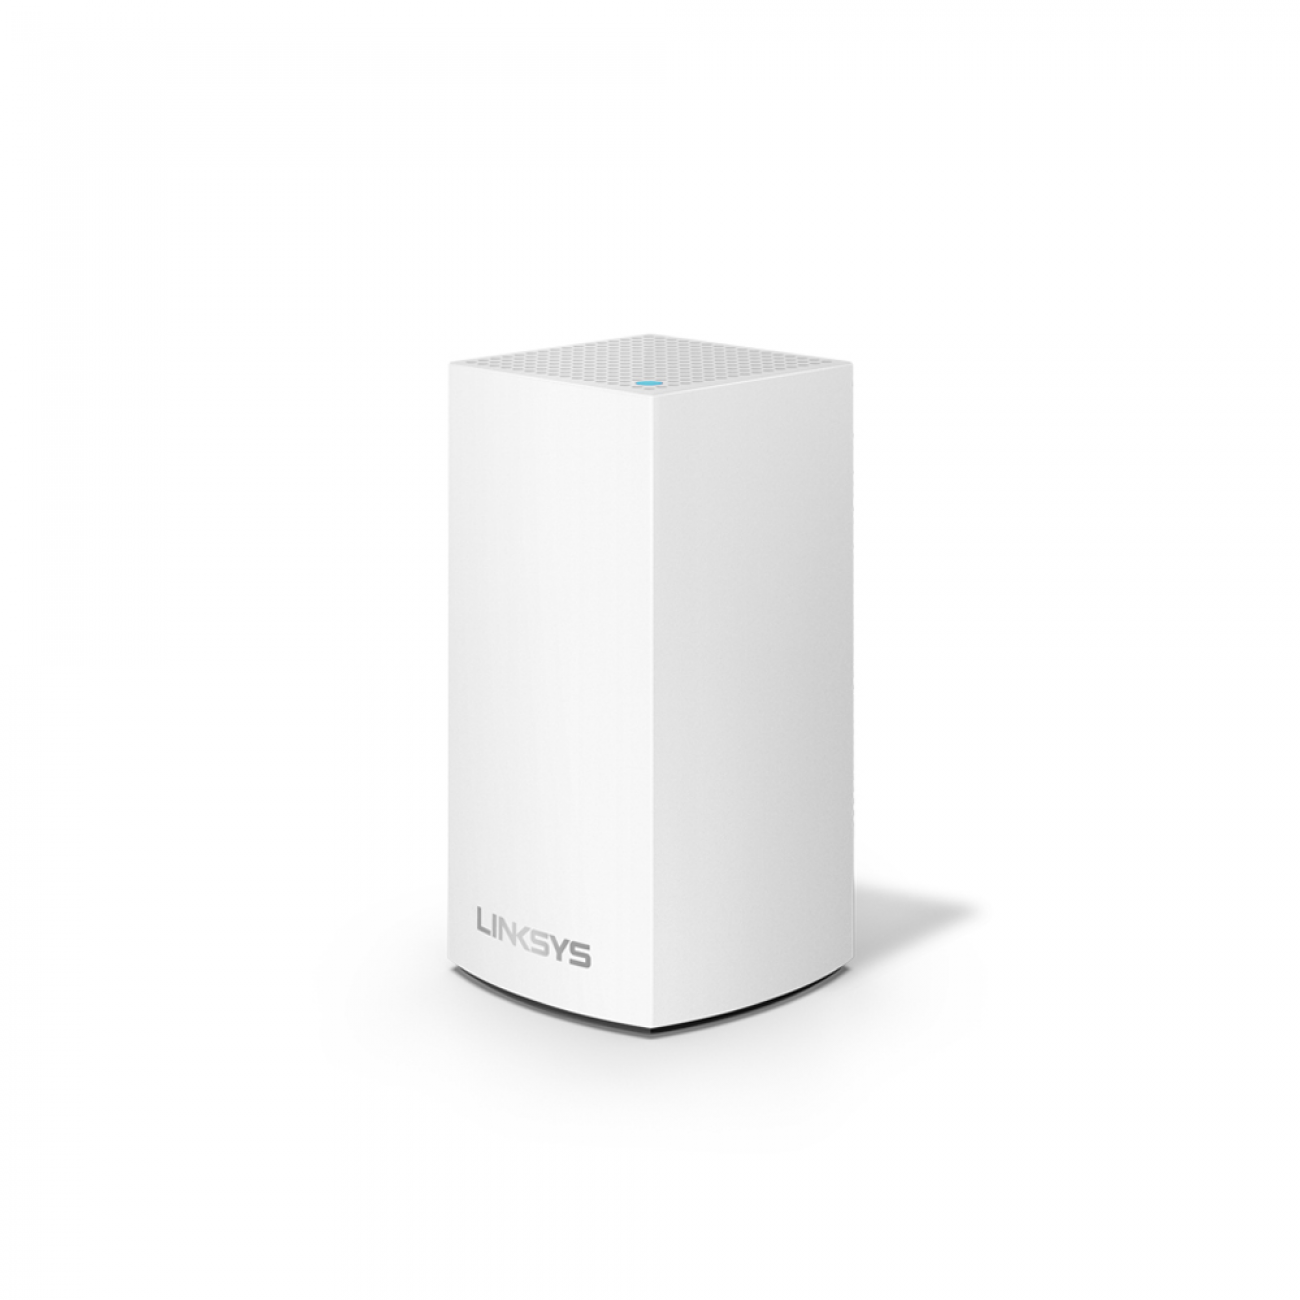 LINKSYS VELOP WHW0101-AH DUAL-BAND AC1300 INTELLIGENT MESH WIFI SYSTEM WIFI 5 MU-MIMO SYSTEM 1-PK